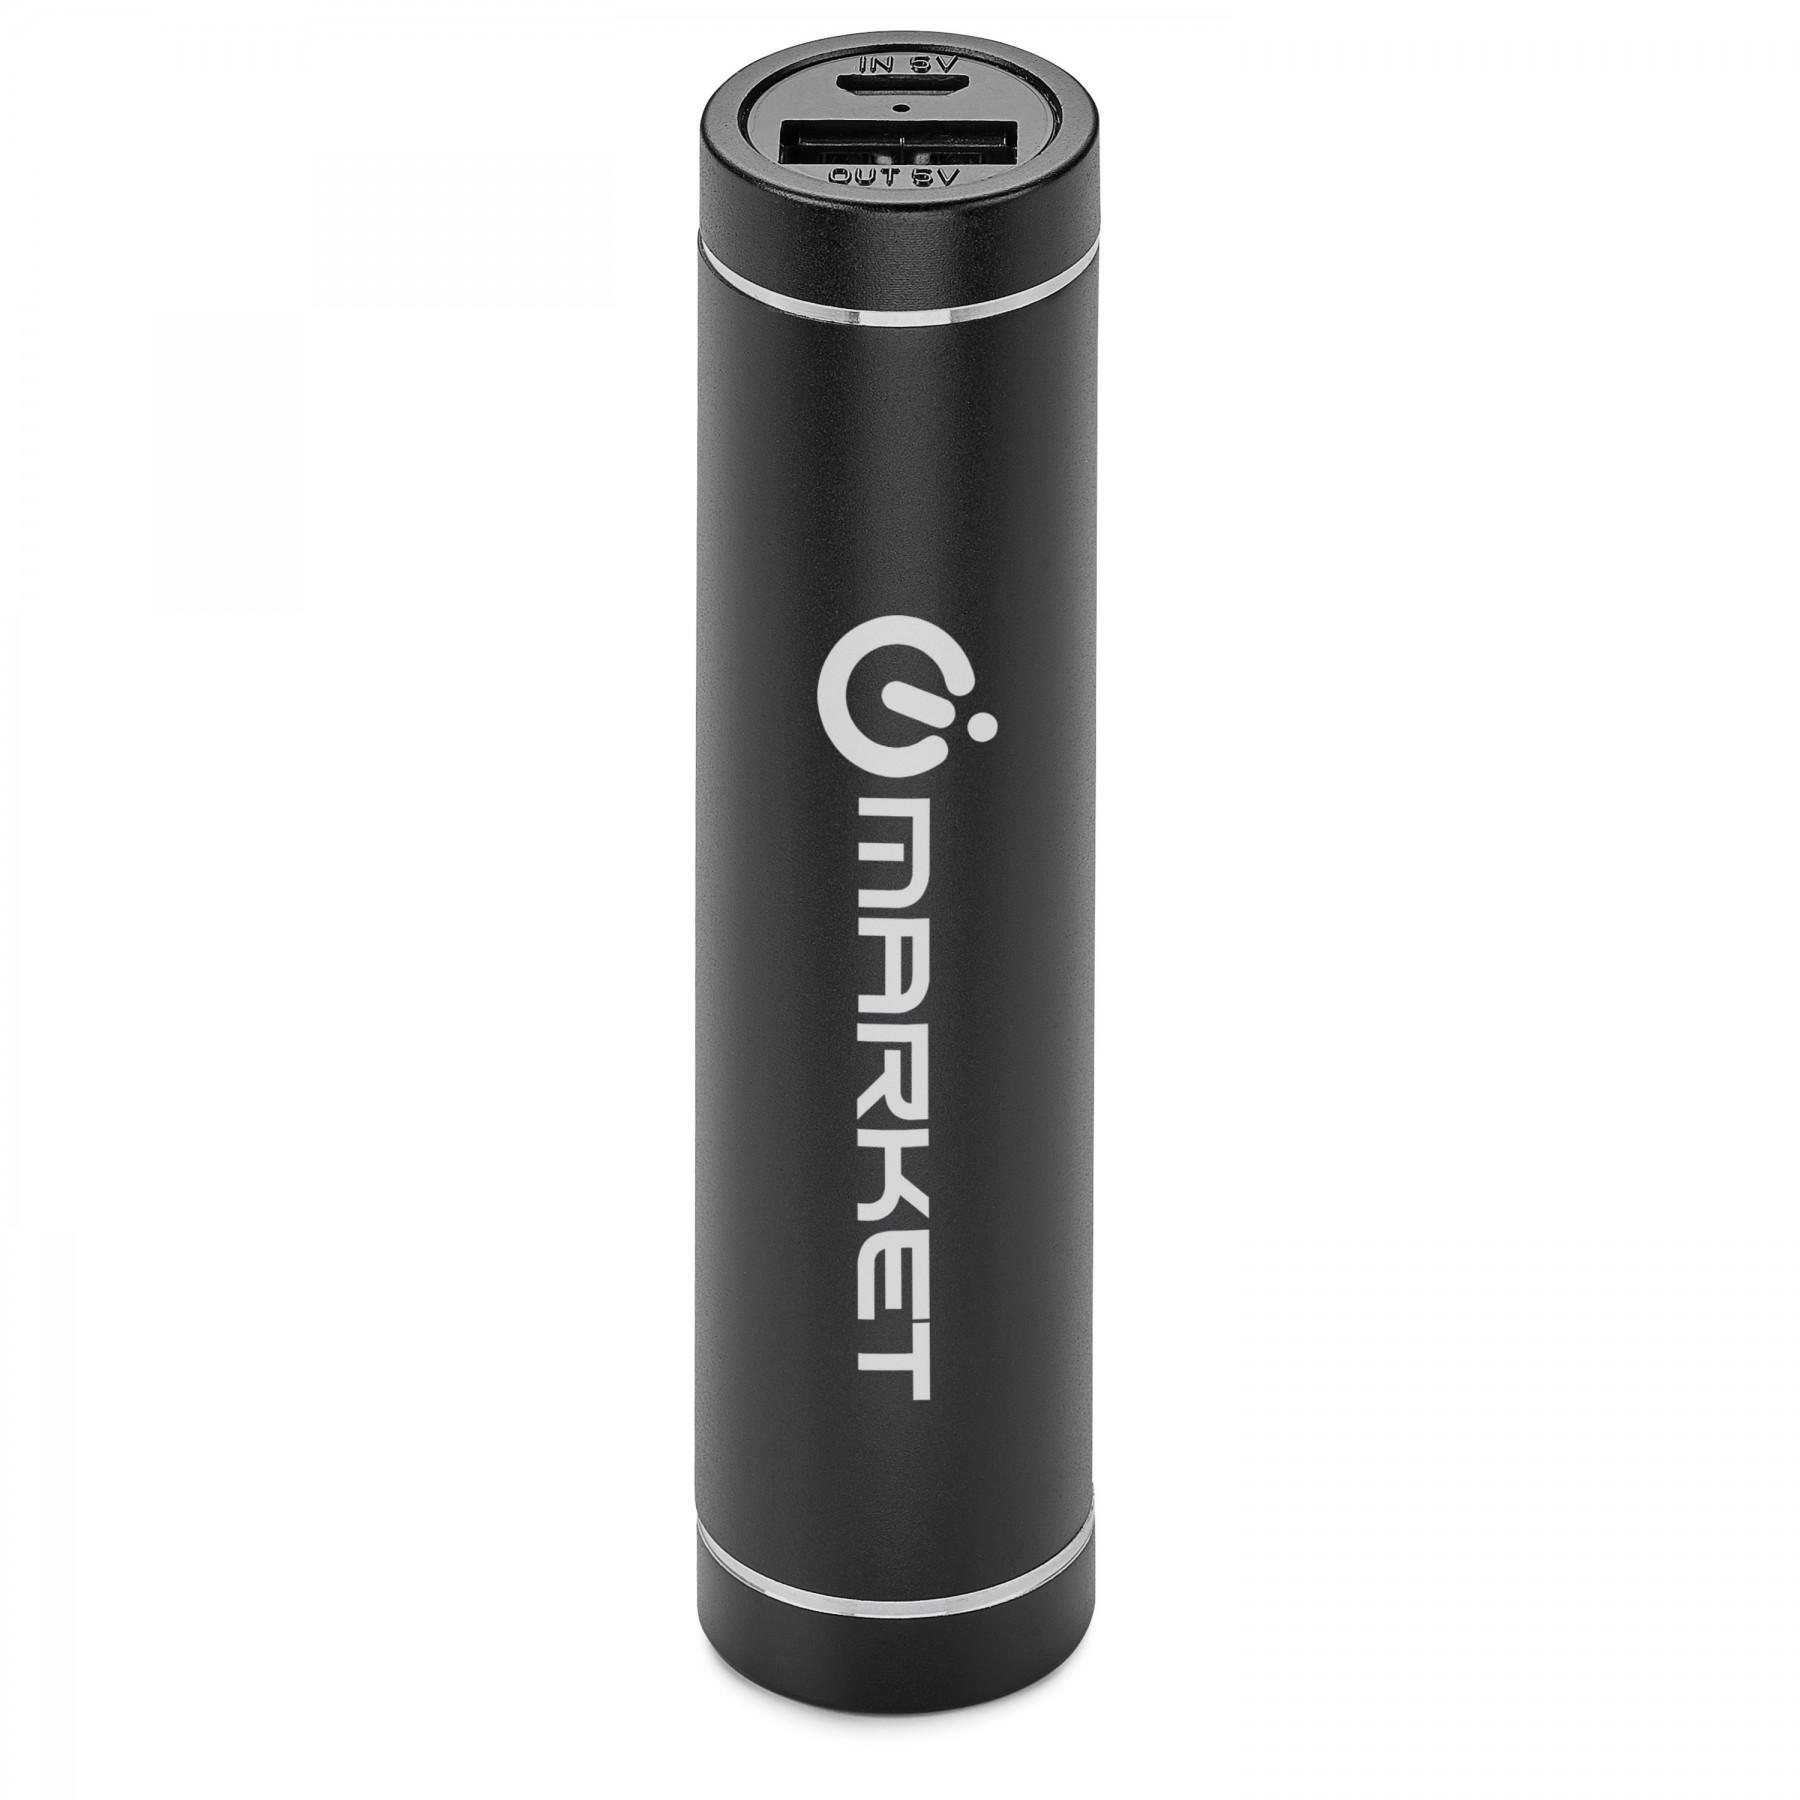 PARDO-G2 2,200 mAh UL CERTIFIED POWER BANK, T1034, Laser Engraved